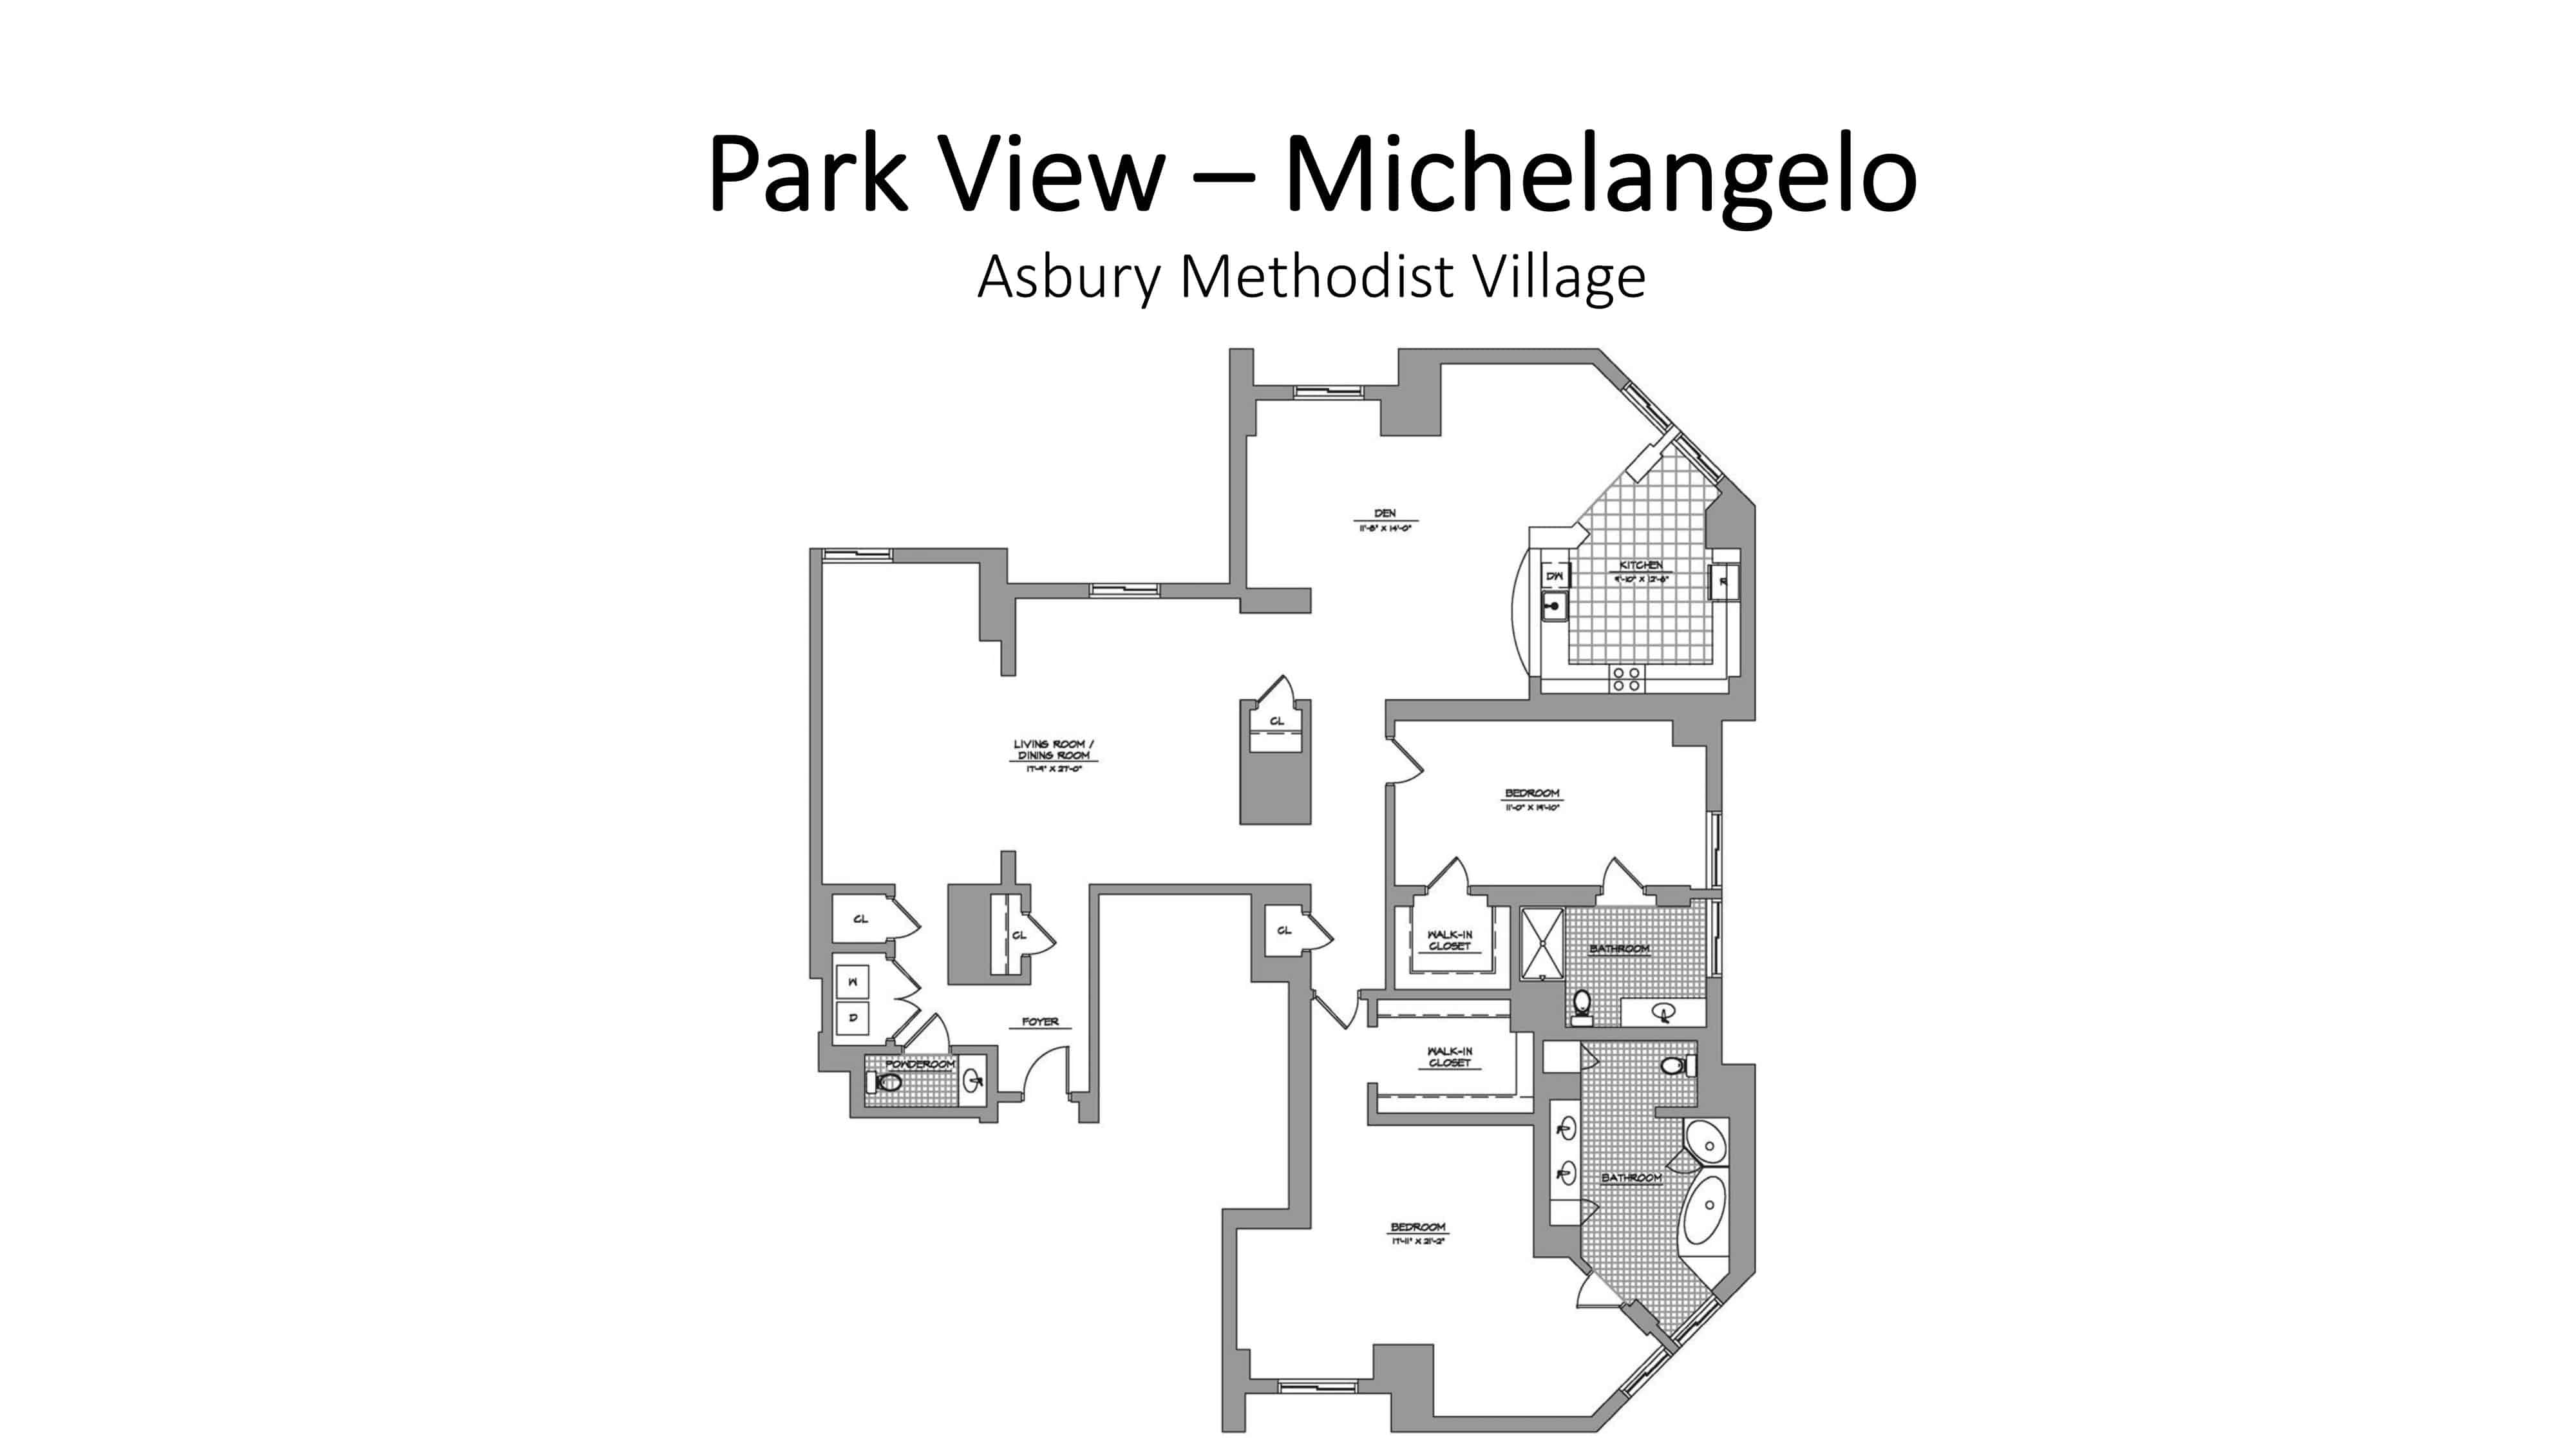 Park_View_Michelangelo